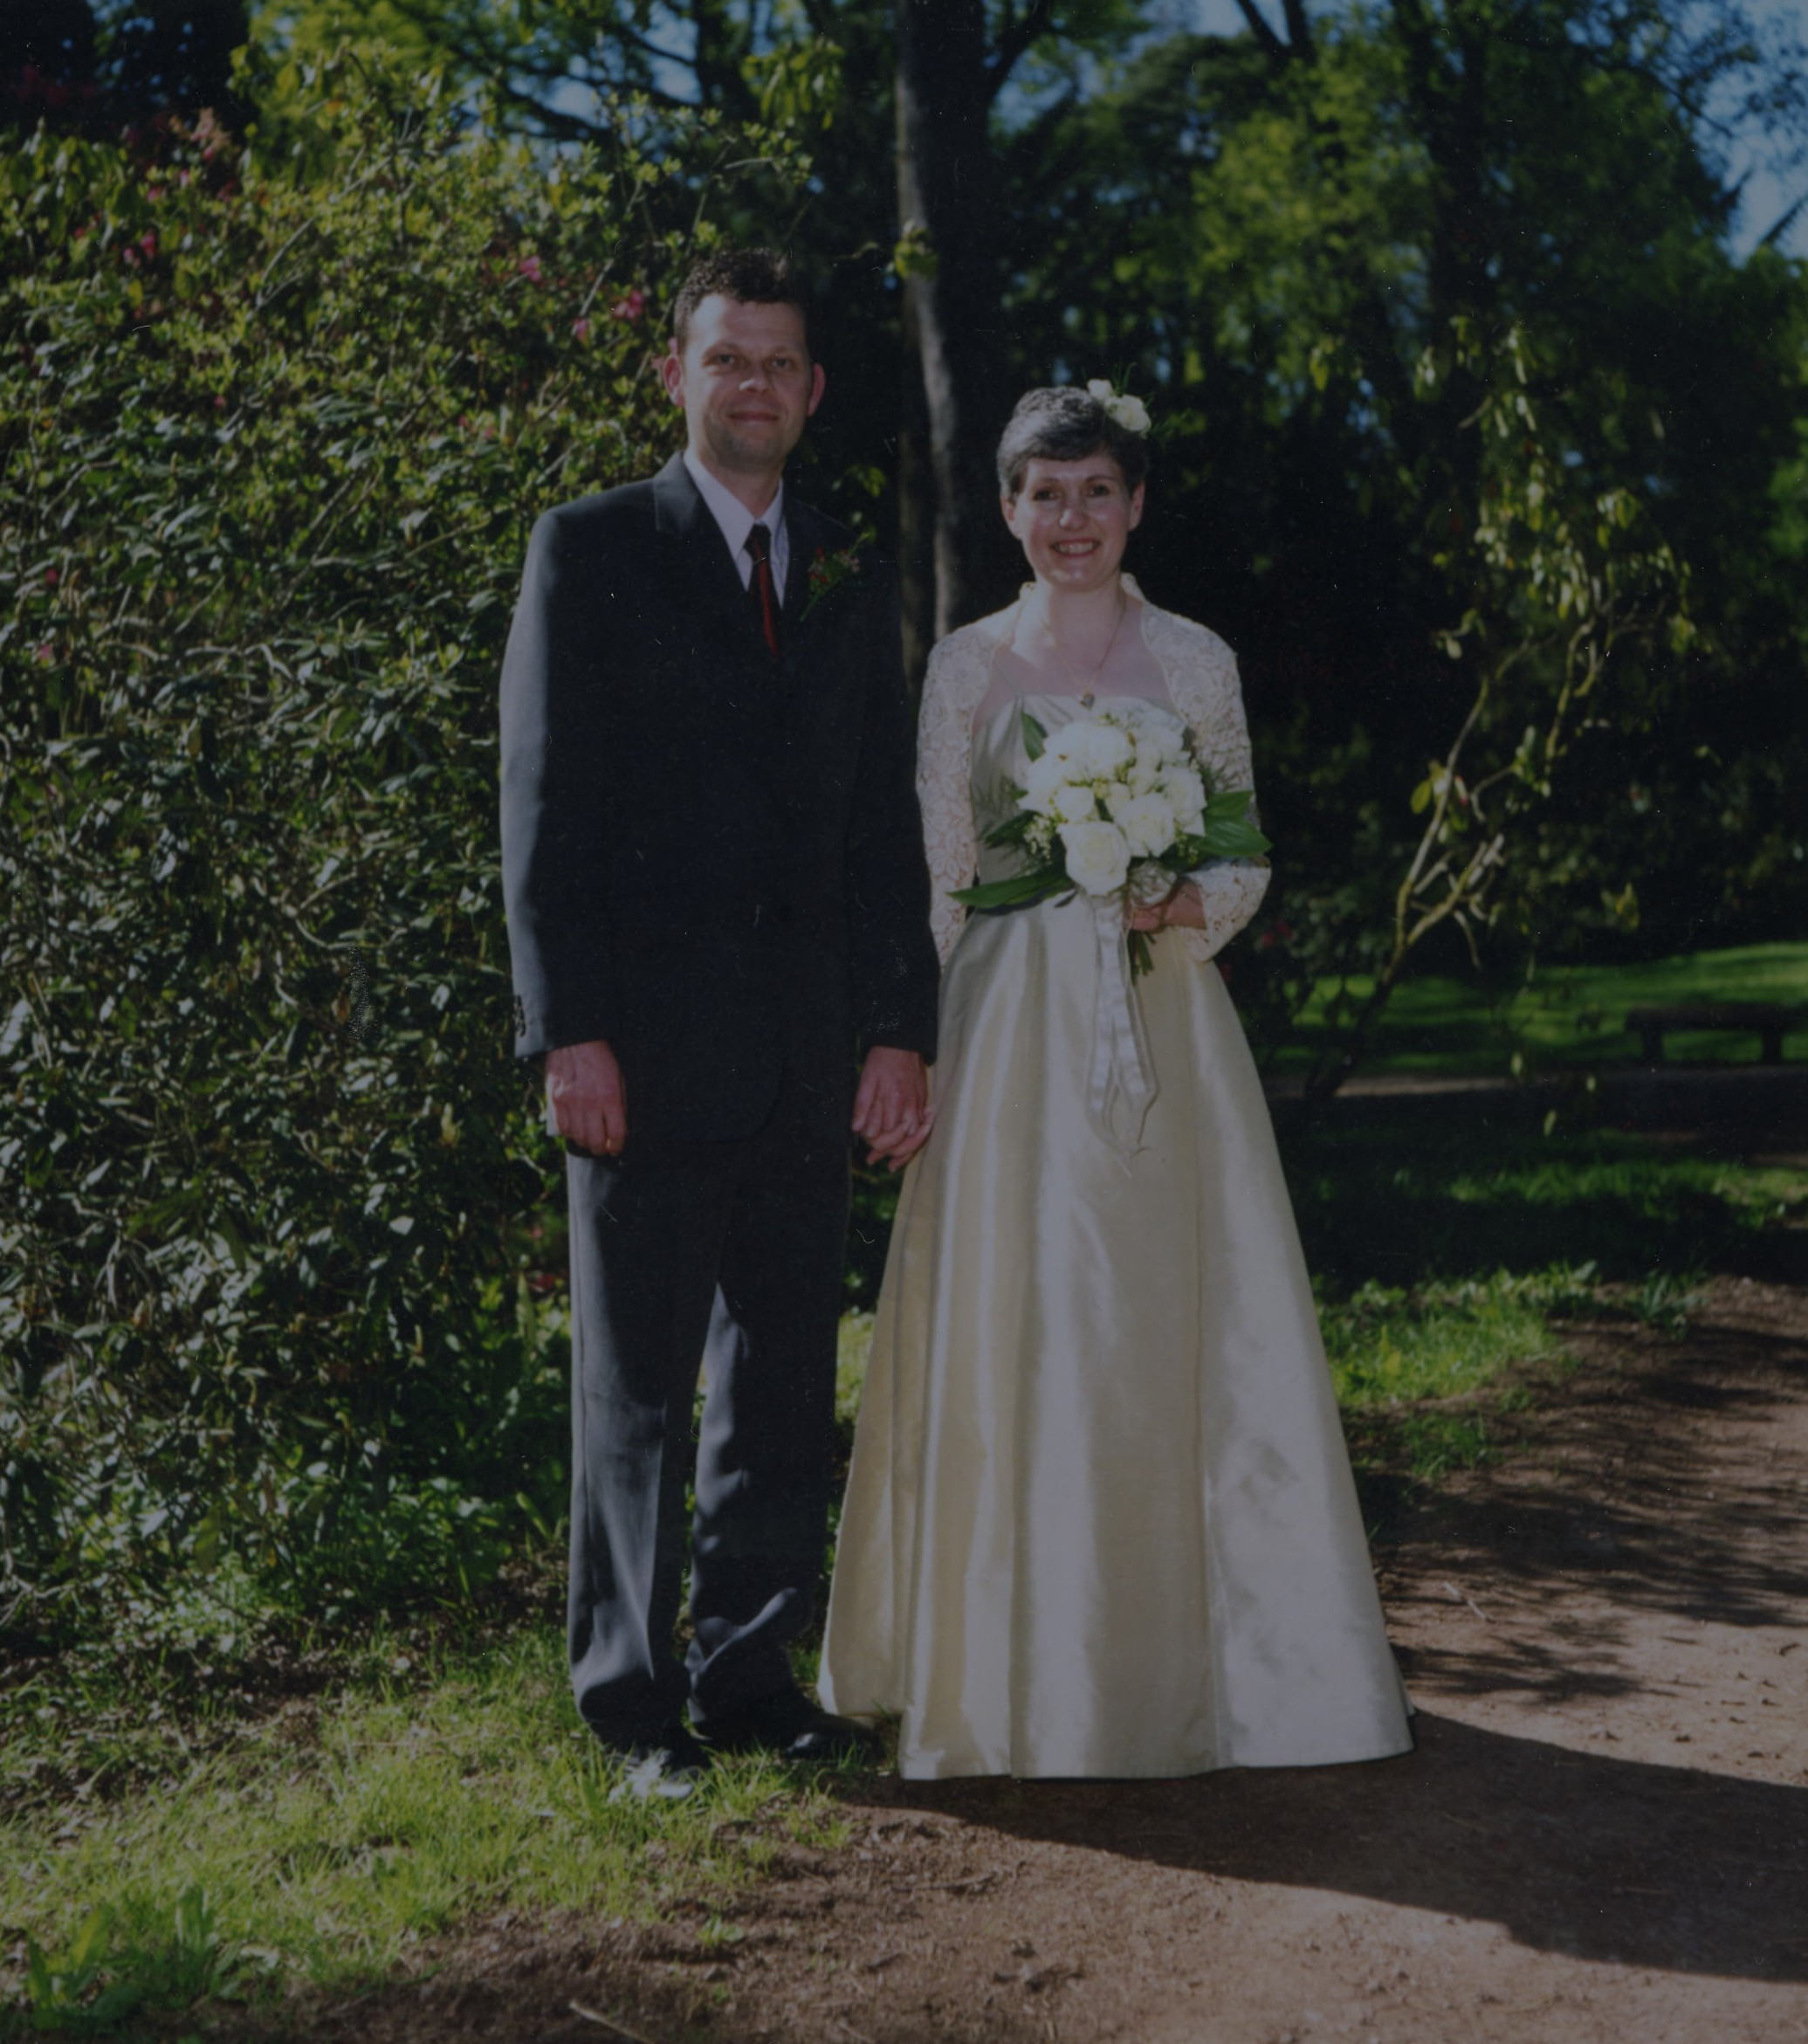 Glyn Toplis & Julie Penny's Wedding